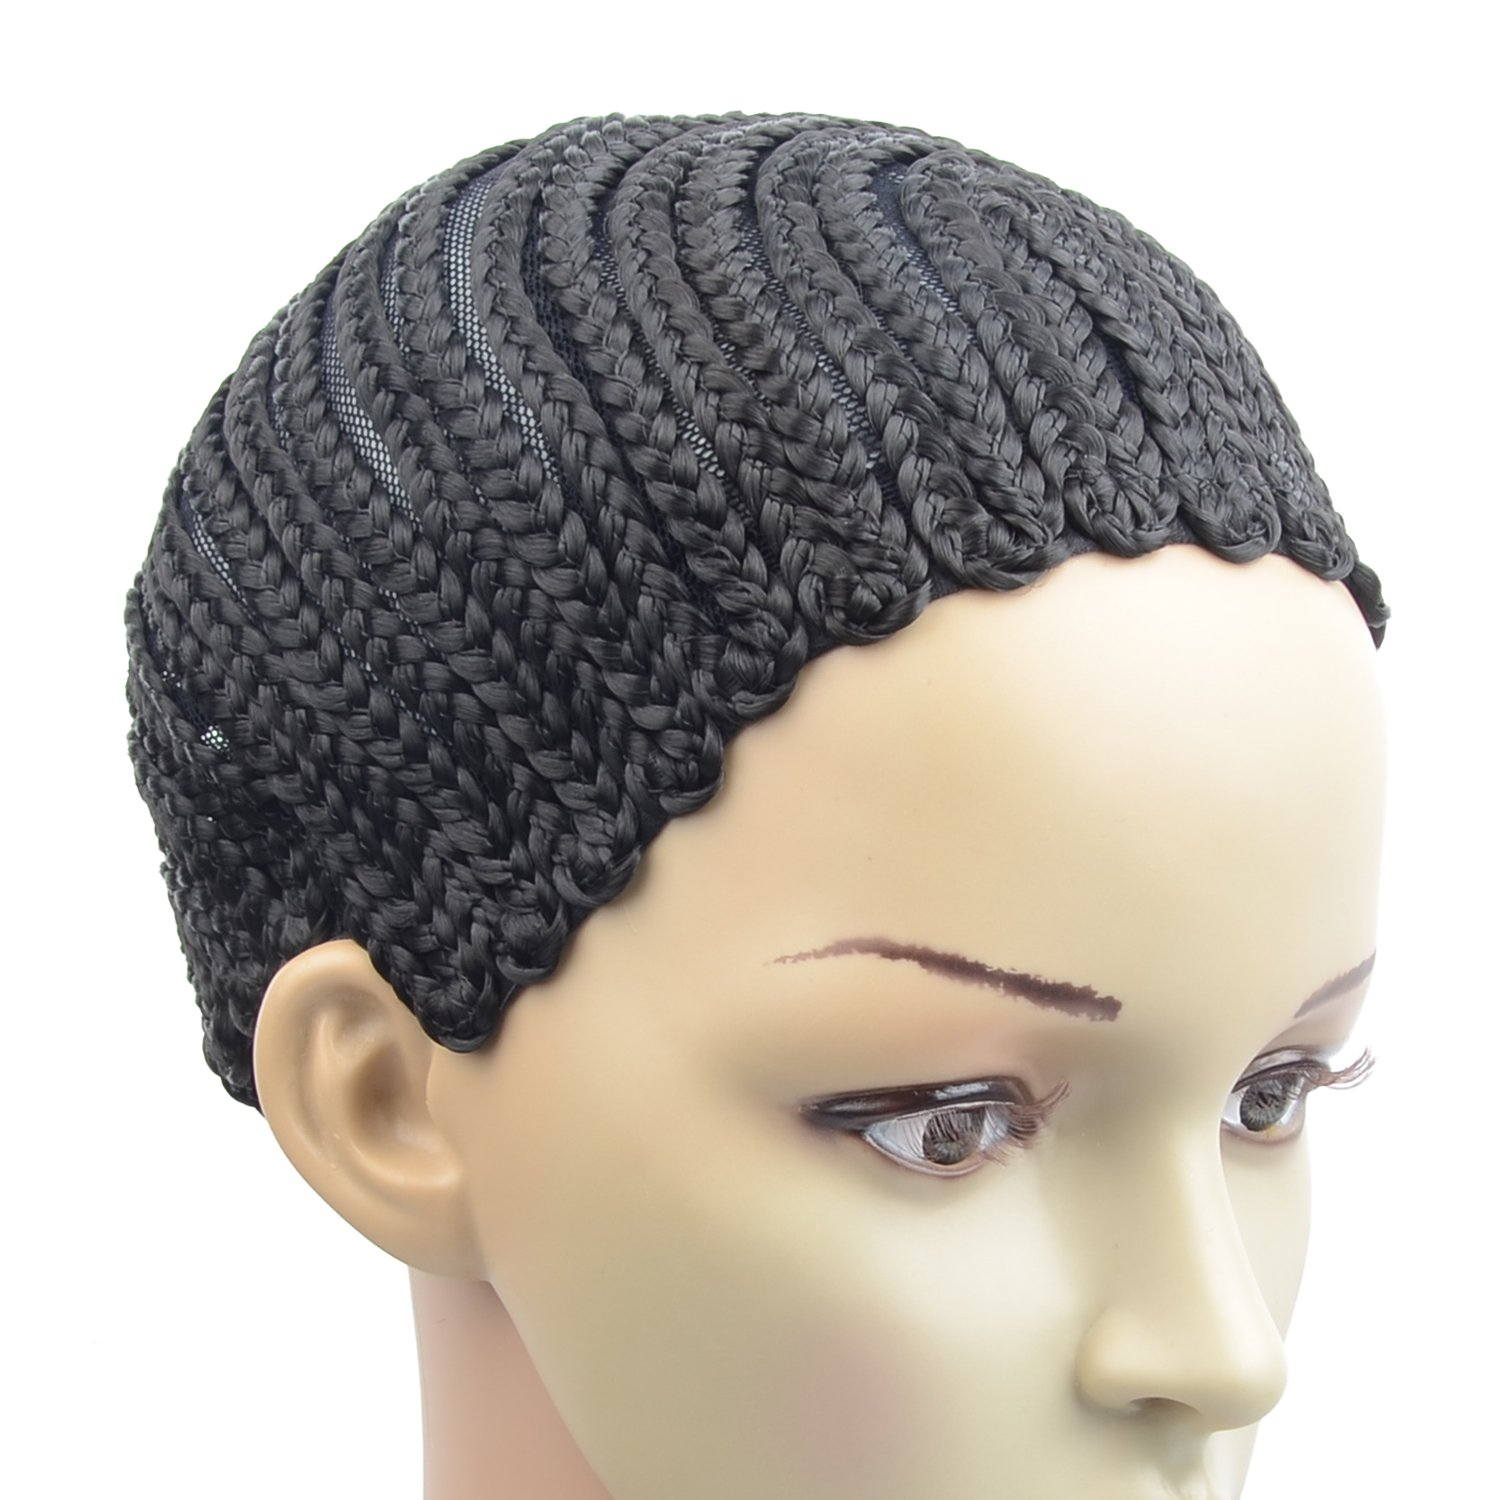 Razeal Clip in Cornrow Crochet Braided Wig Cap Adjustable Medium Size Crochet Wig Cap (U Part)